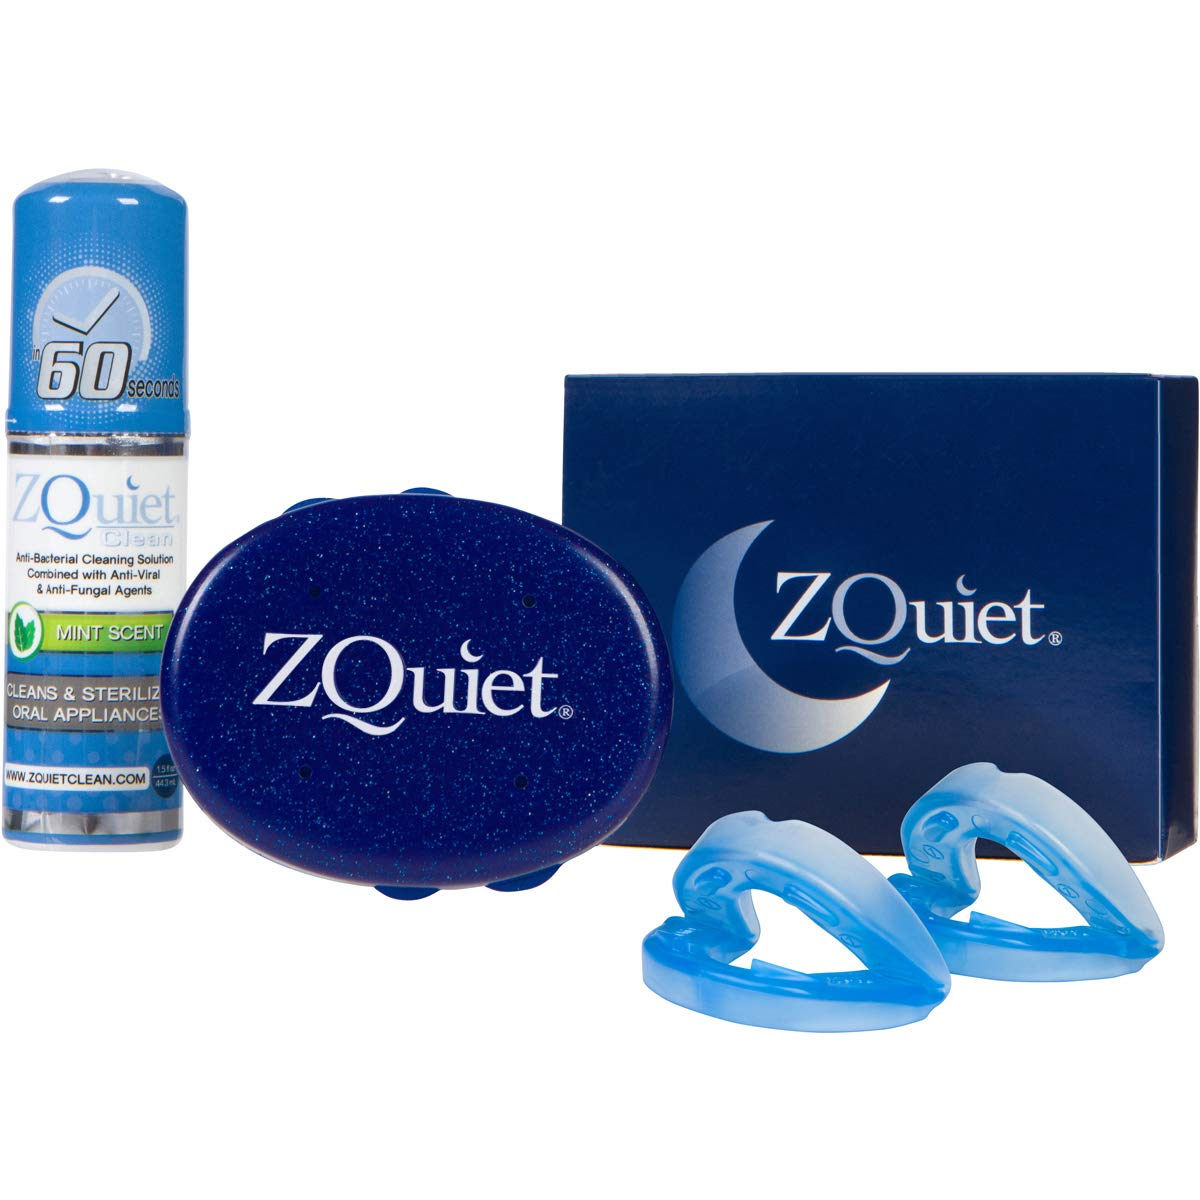 ZQuiet® Anti-Snoring Solution, 2-Size Comfort System Starter Kit with Cleaner: Set of 2 Sleep Aid Mouthpieces, Cleaner + Storage Case